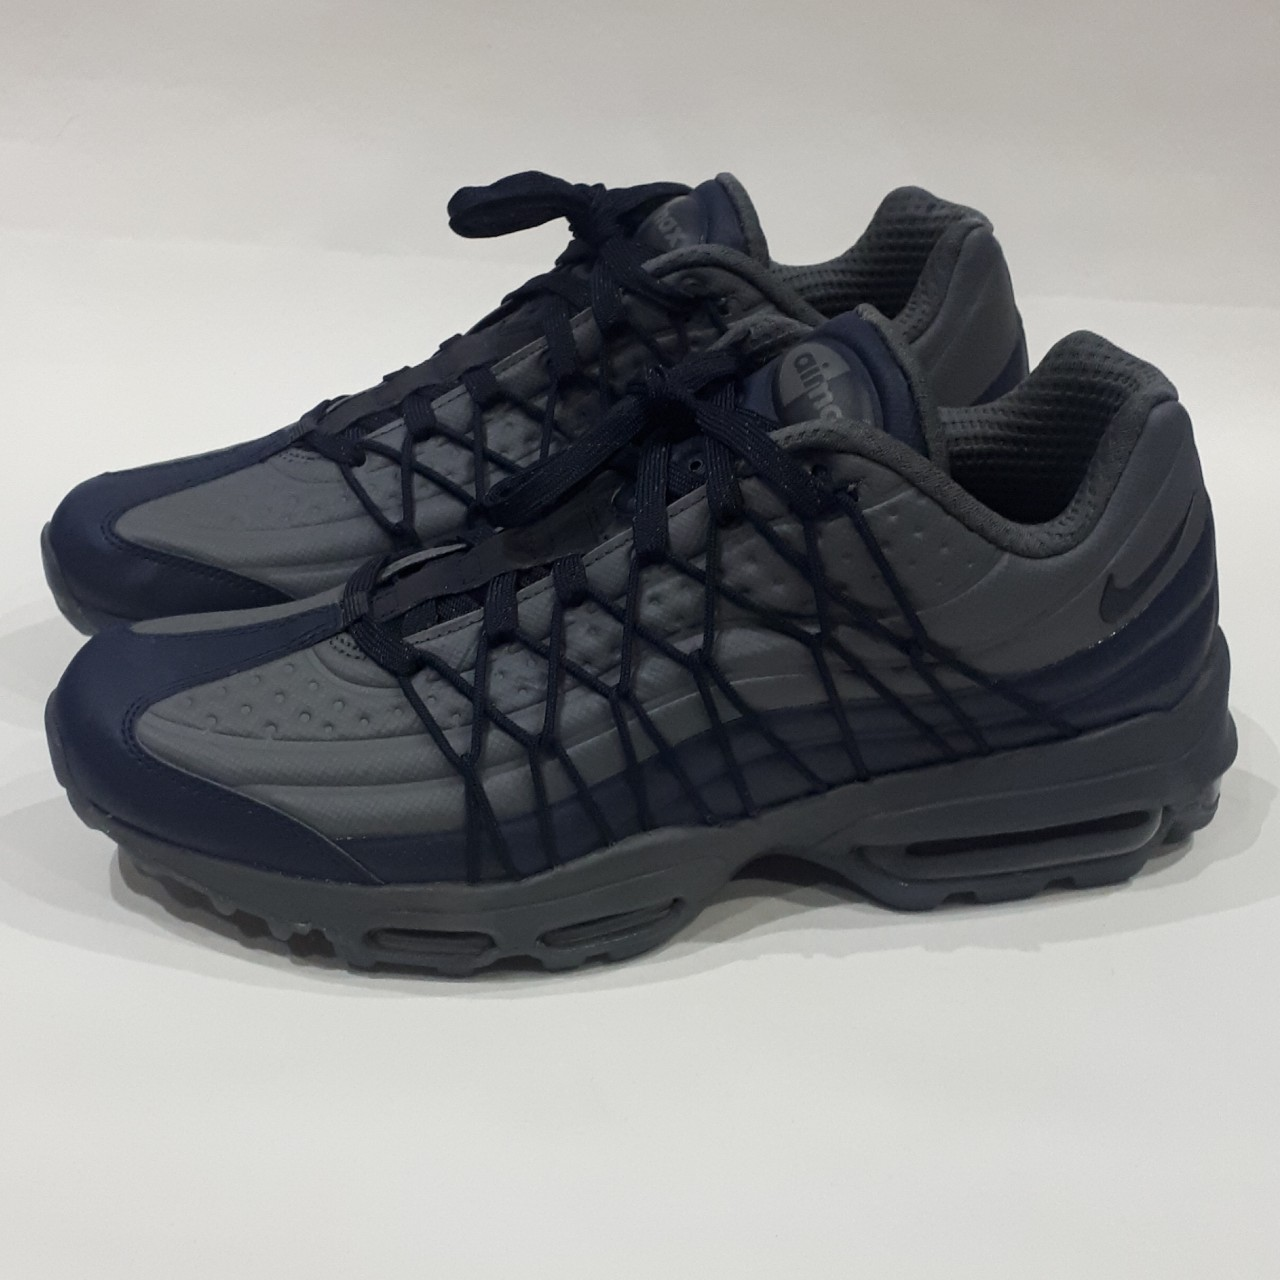 ObsidianDark Grey Nike Air Max 95 Ultra SE Size UK Depop